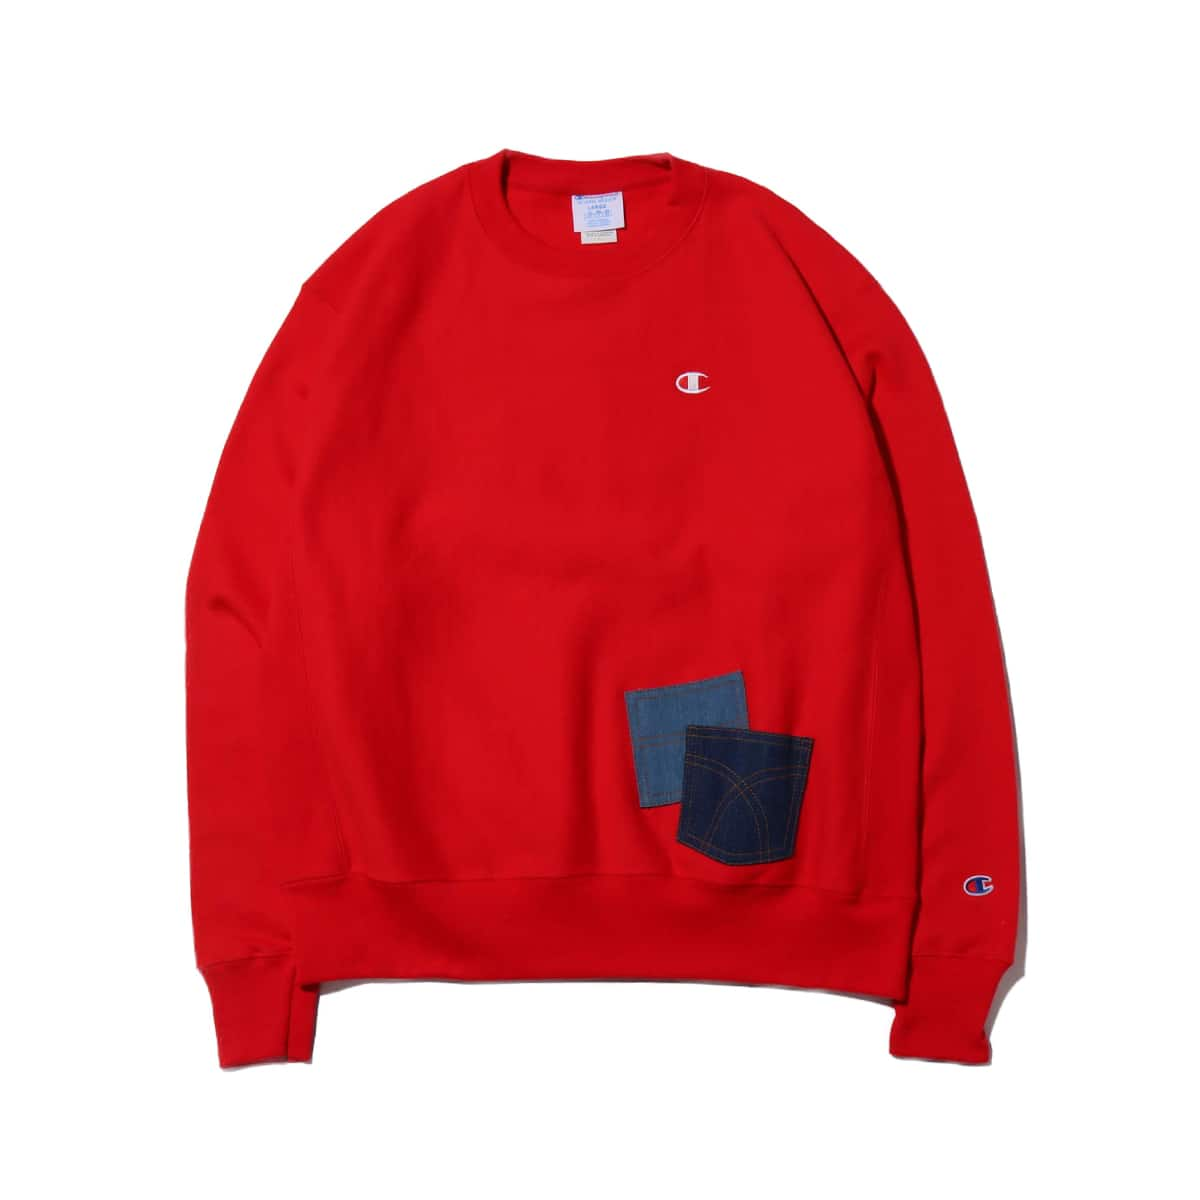 REMAKE CREW NECK by 太田夢莉 RED 19HO-S_photo_large